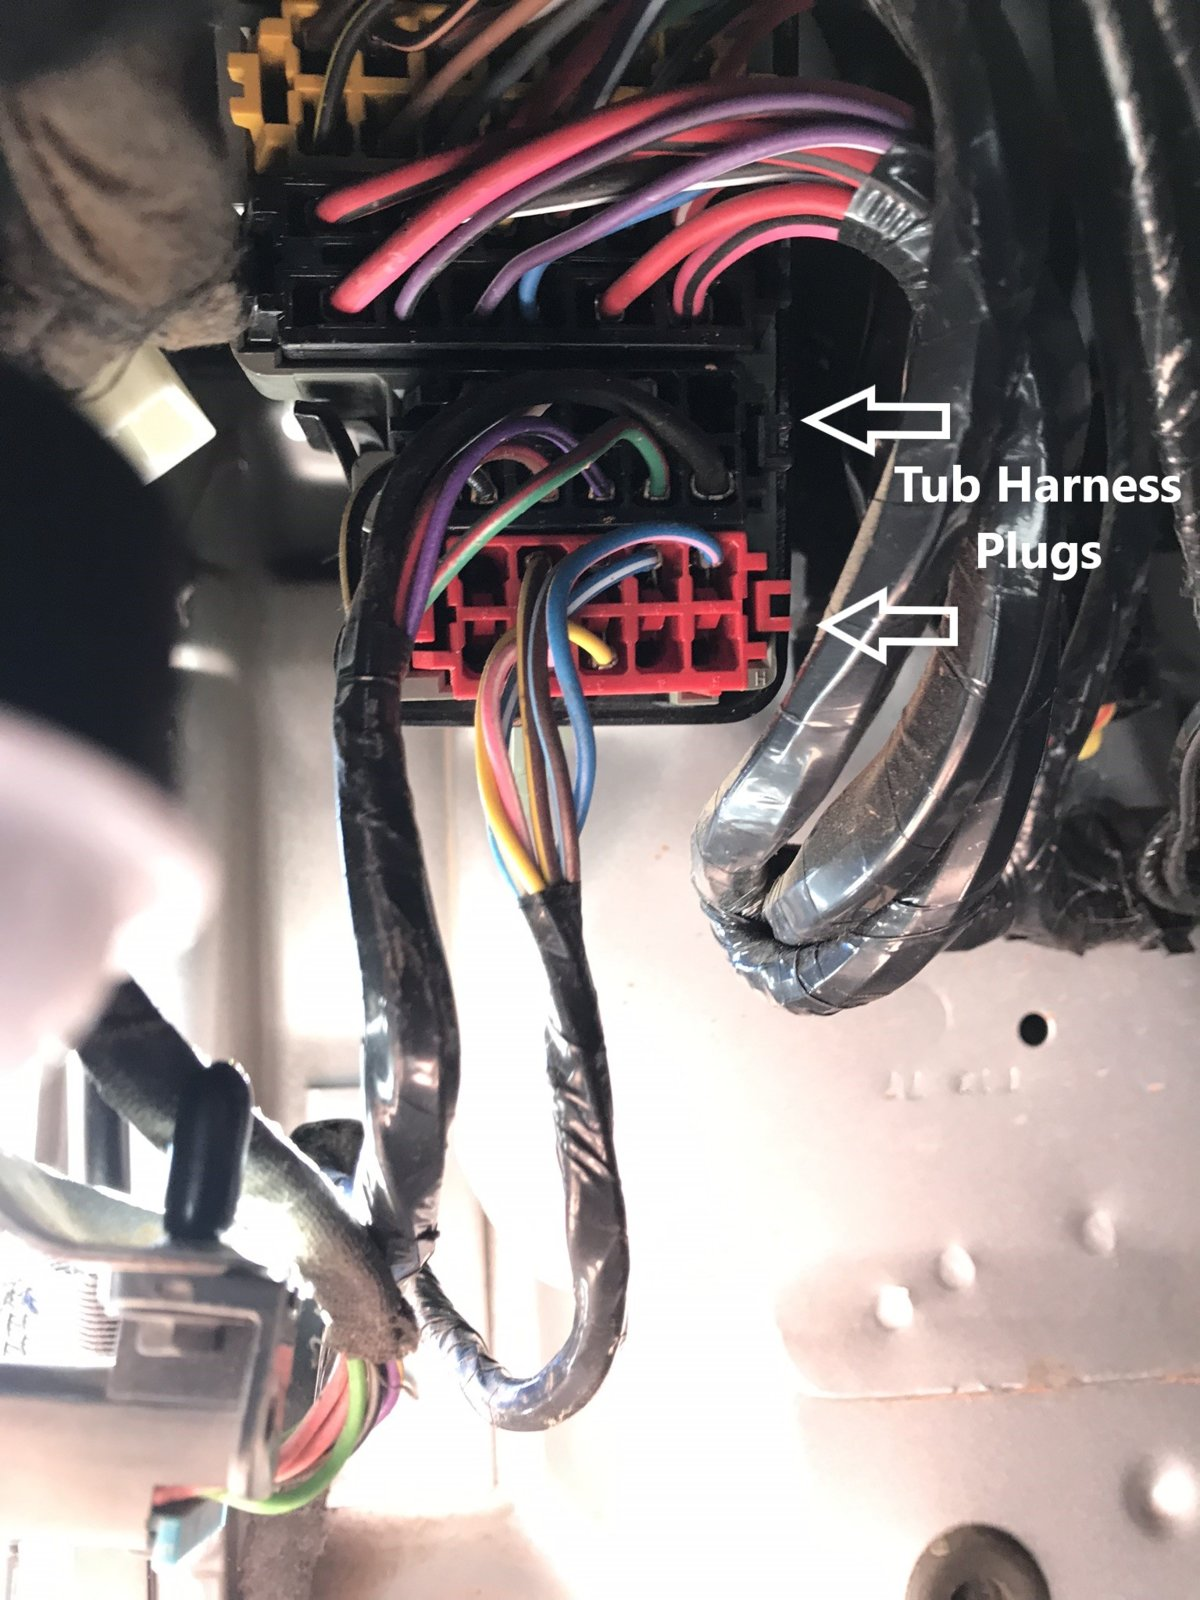 How to Factory Wire your TJ for a Hardtop Part 2 (Rear Tub ... Jeep Hardtop Wiring Harness Removal on jeep top storage system, jeep jk 2 door, jeep fan clutch removal, jeep cj5 parts catalog, jeep bikini top, jeep jk modification ideas, jeep fender removal, jeep cj5 restoration, jeep cherokee, jeep door parts, jeep comanche pickup, jeep door removal, jeep top removal kit,